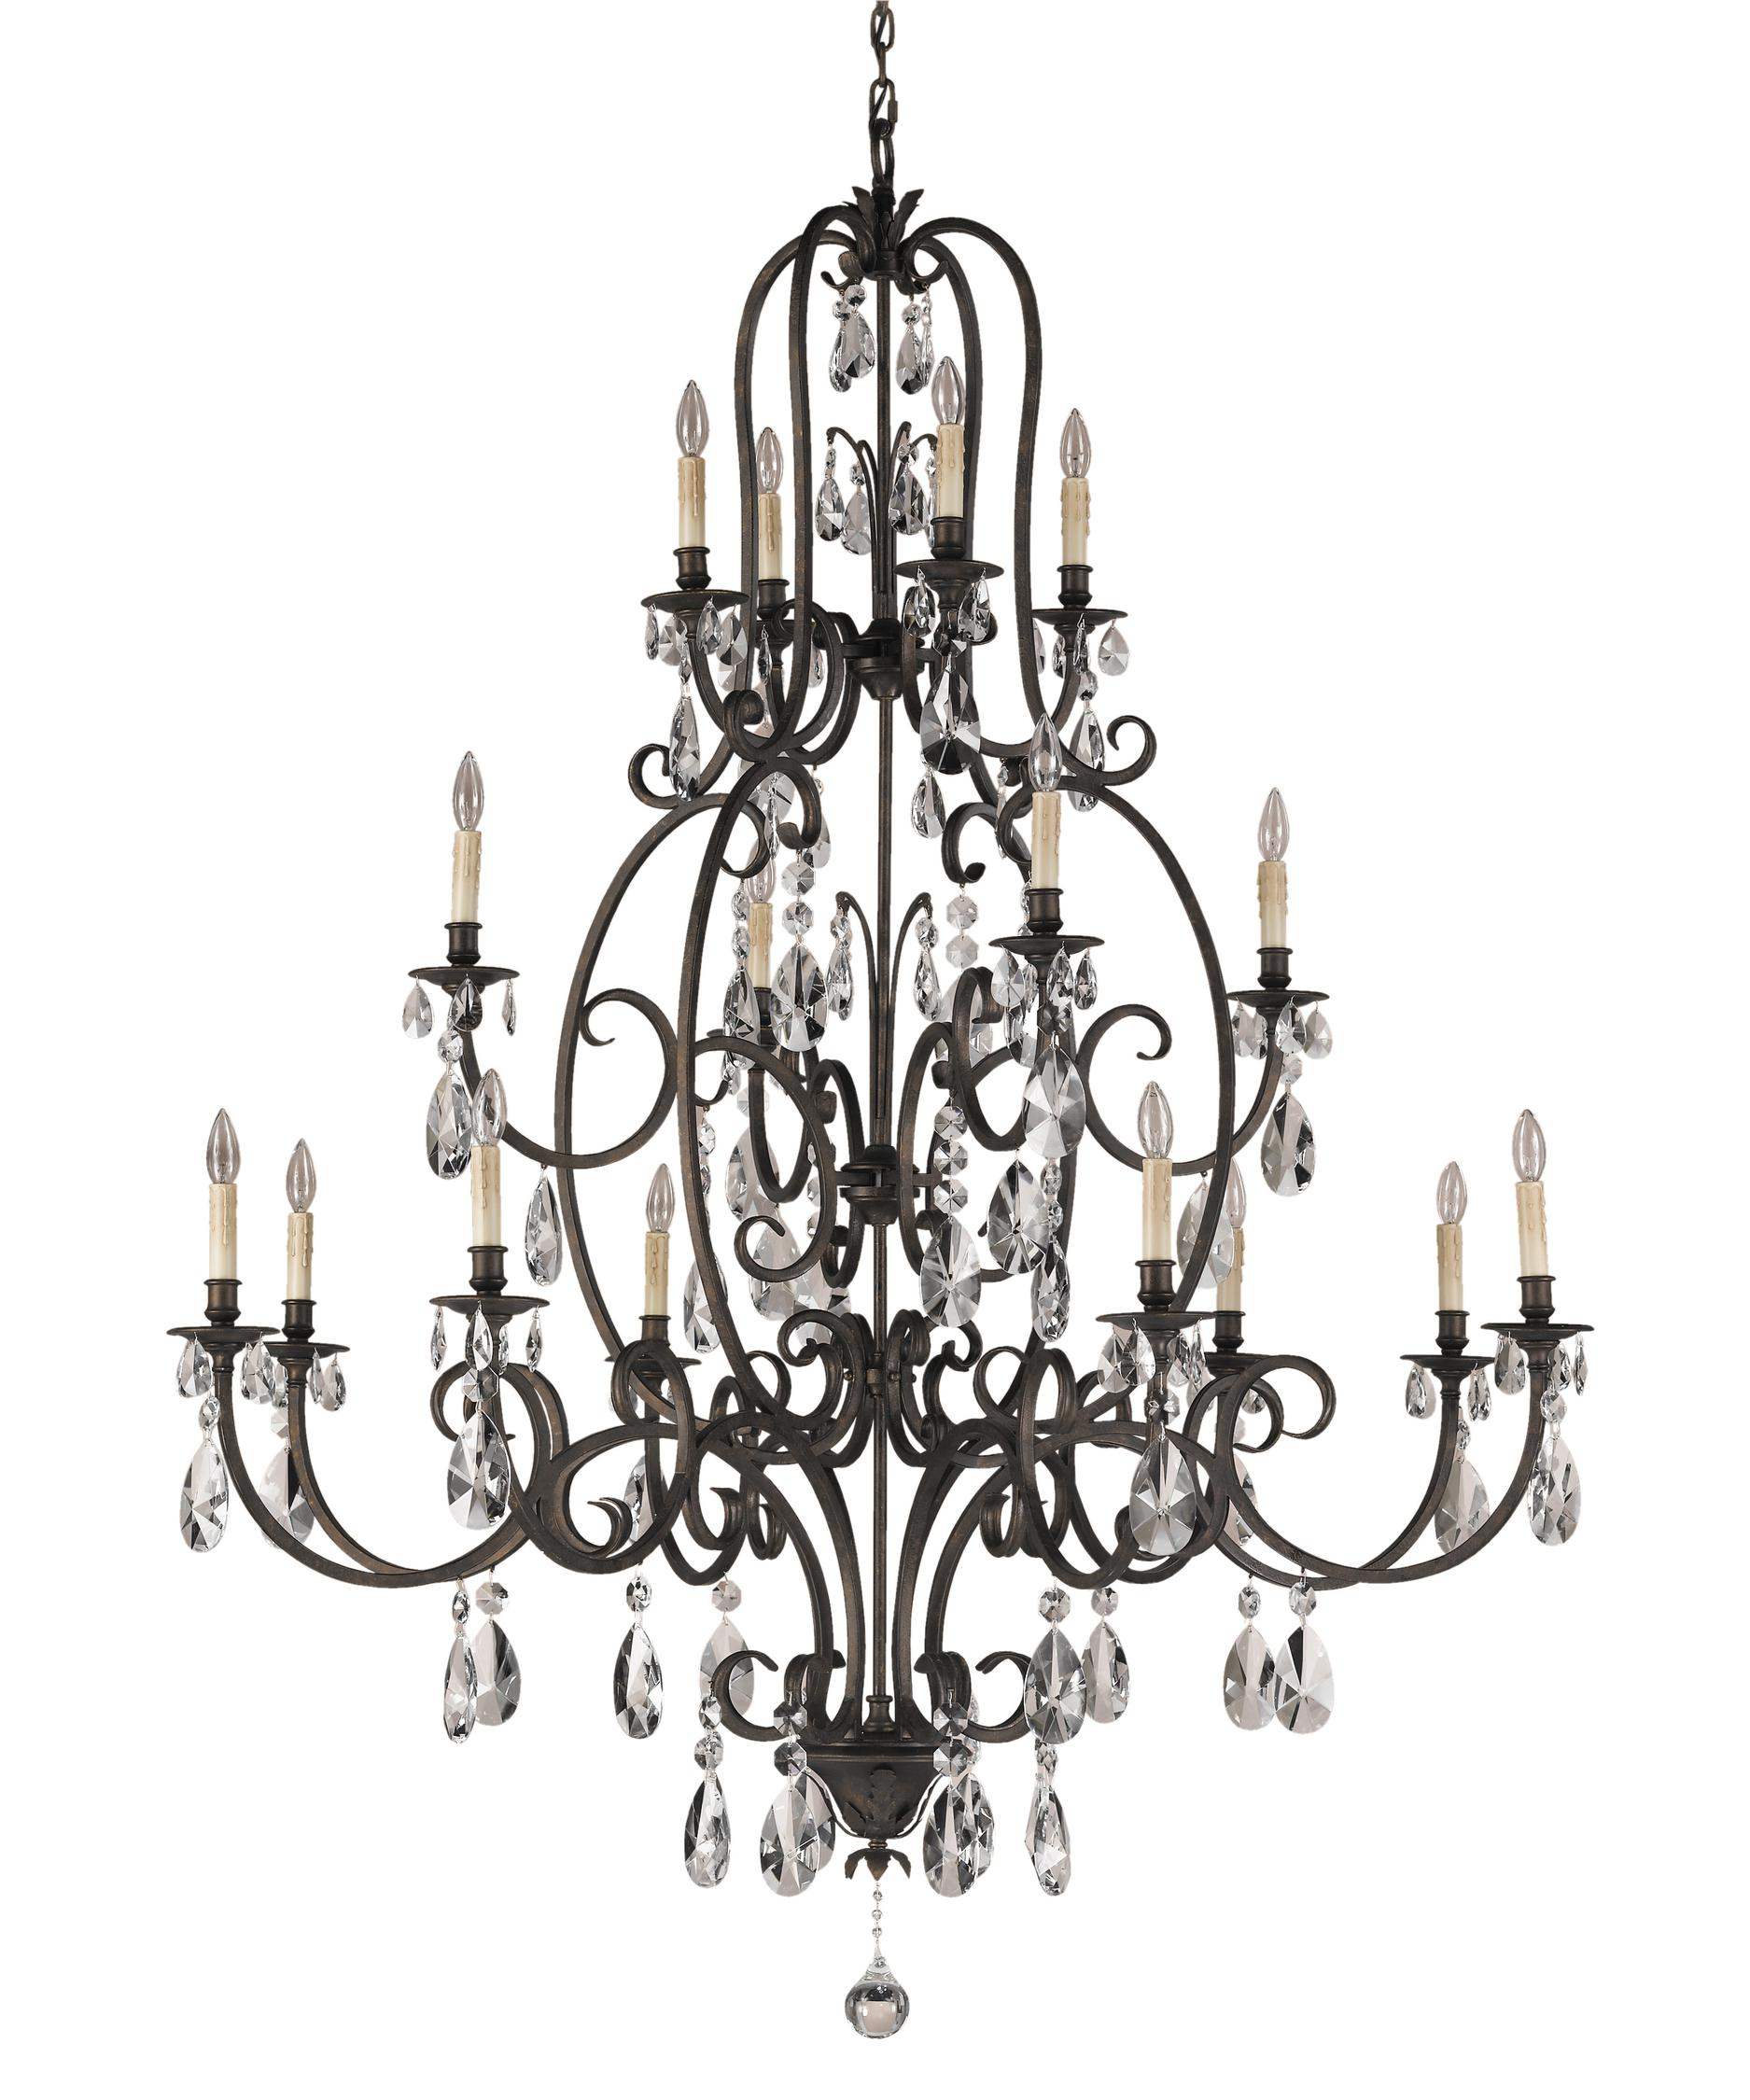 Murray Feiss Salon Maison 54 Inch Wide 16 Light Chandelier – Murray Feiss Chandeliers